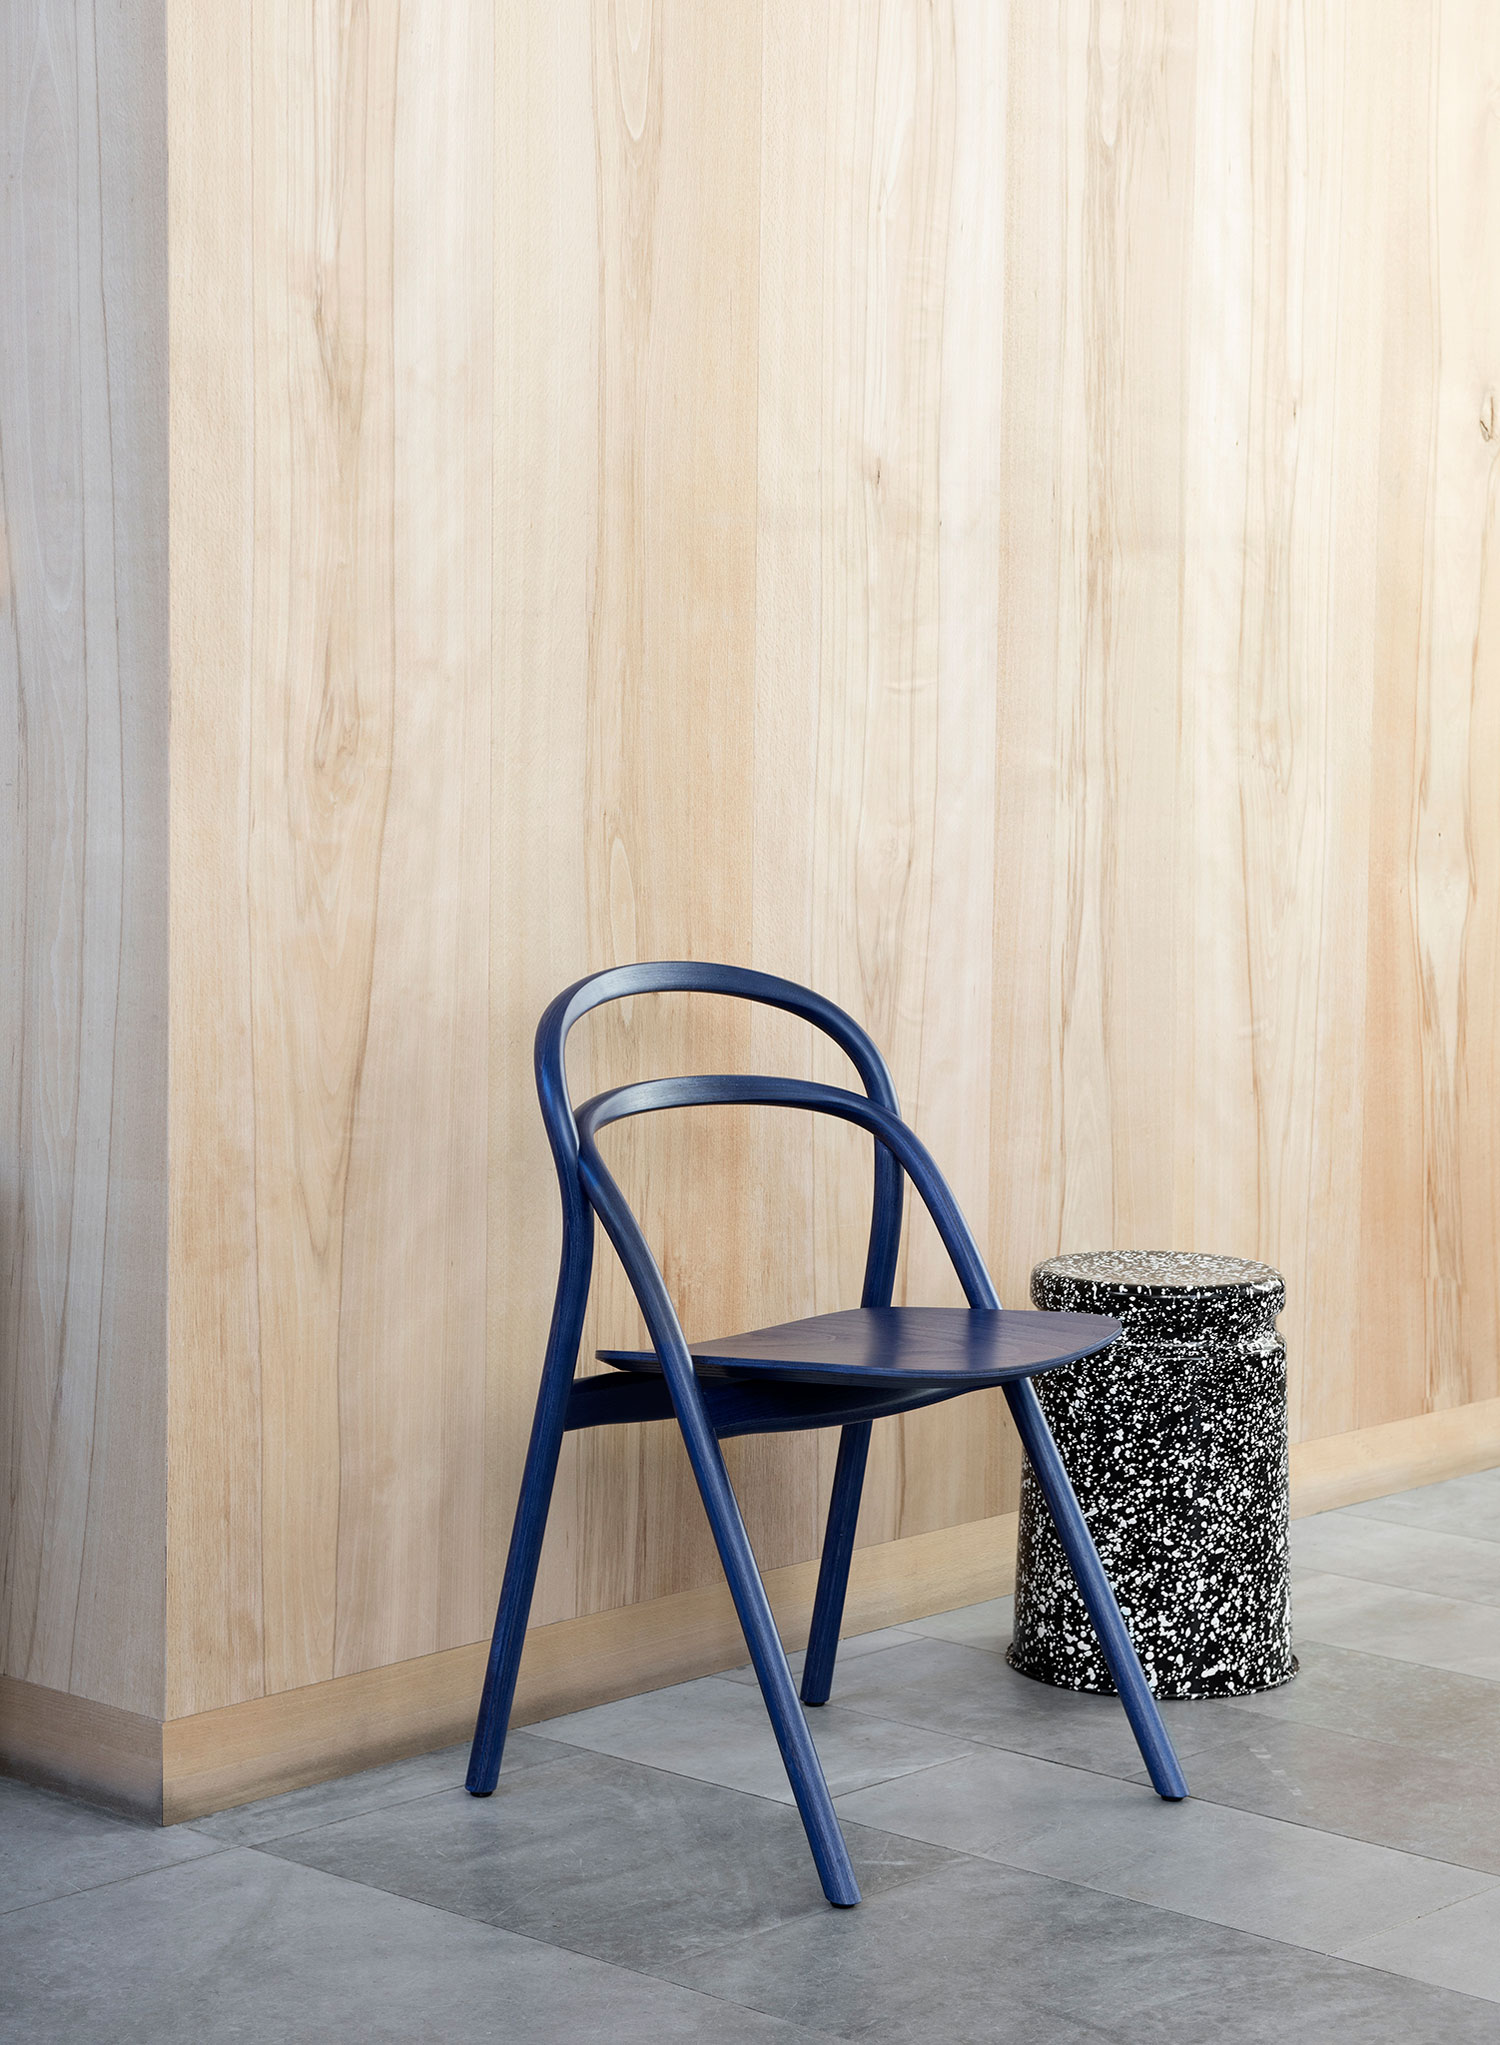 Udon Chair by Hem at Stockholm Furniture Fair 2017 | Yellowtrace